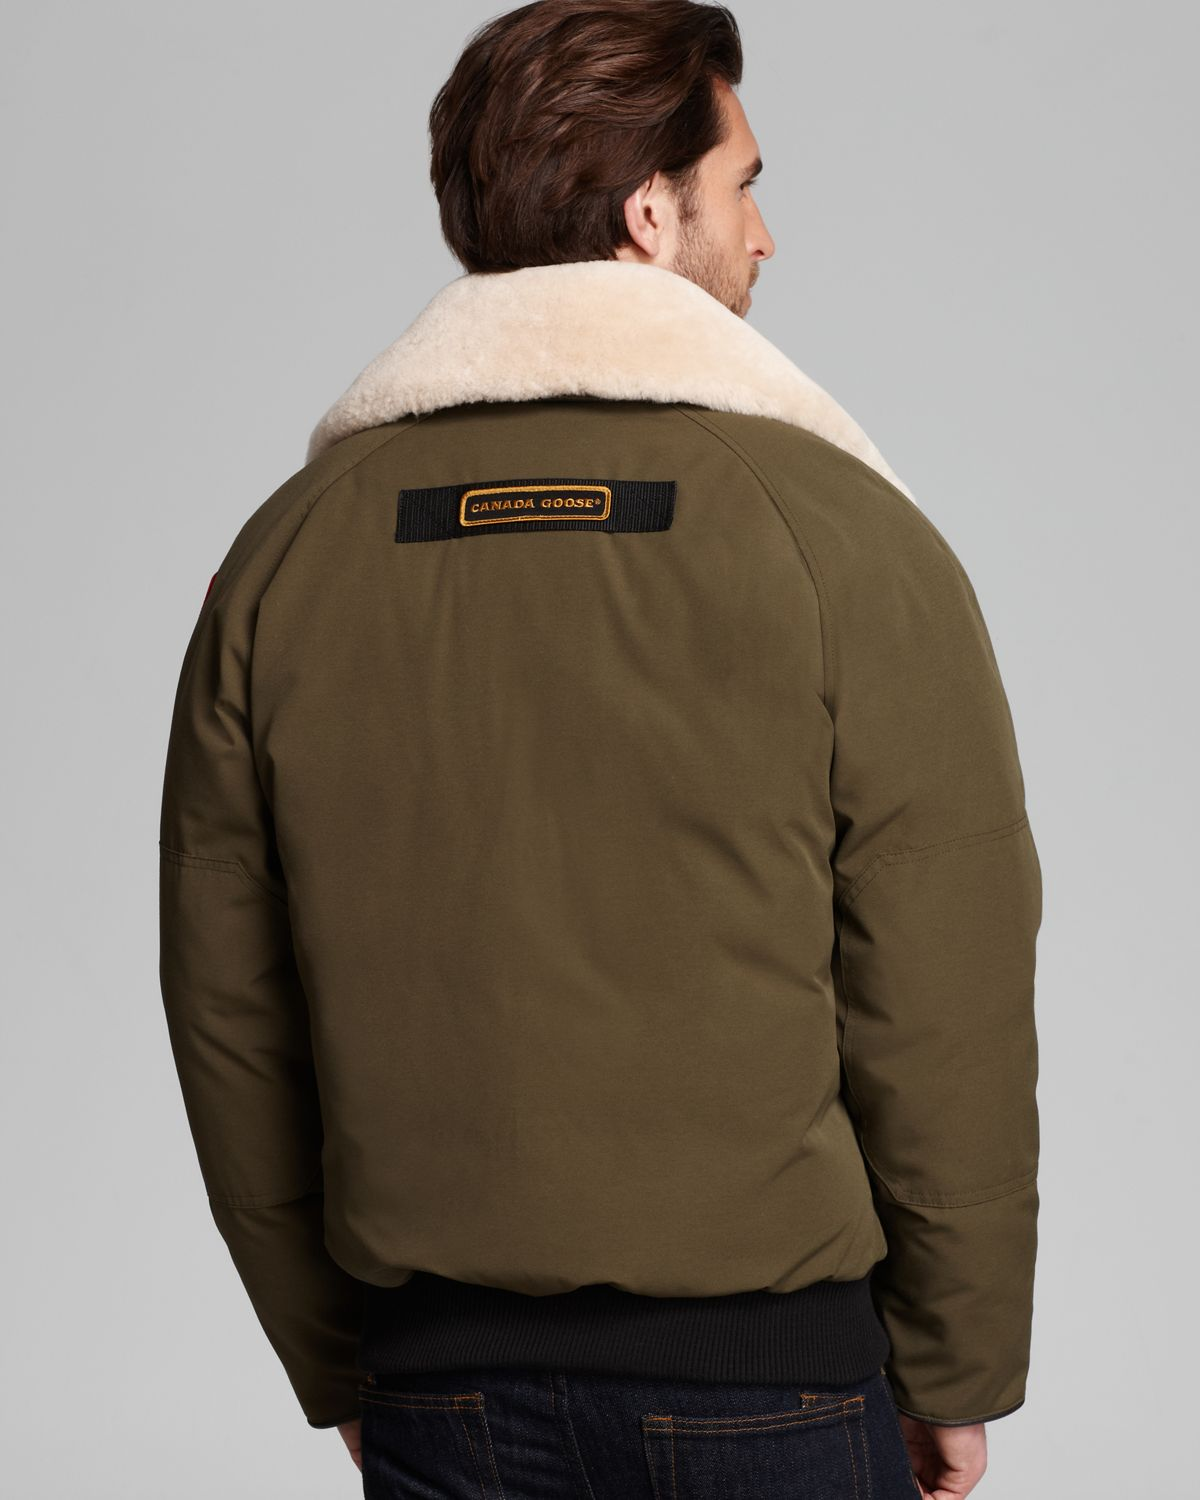 Canada goose Foxe Bomber Jacket with Shearling Collar in Green for ...